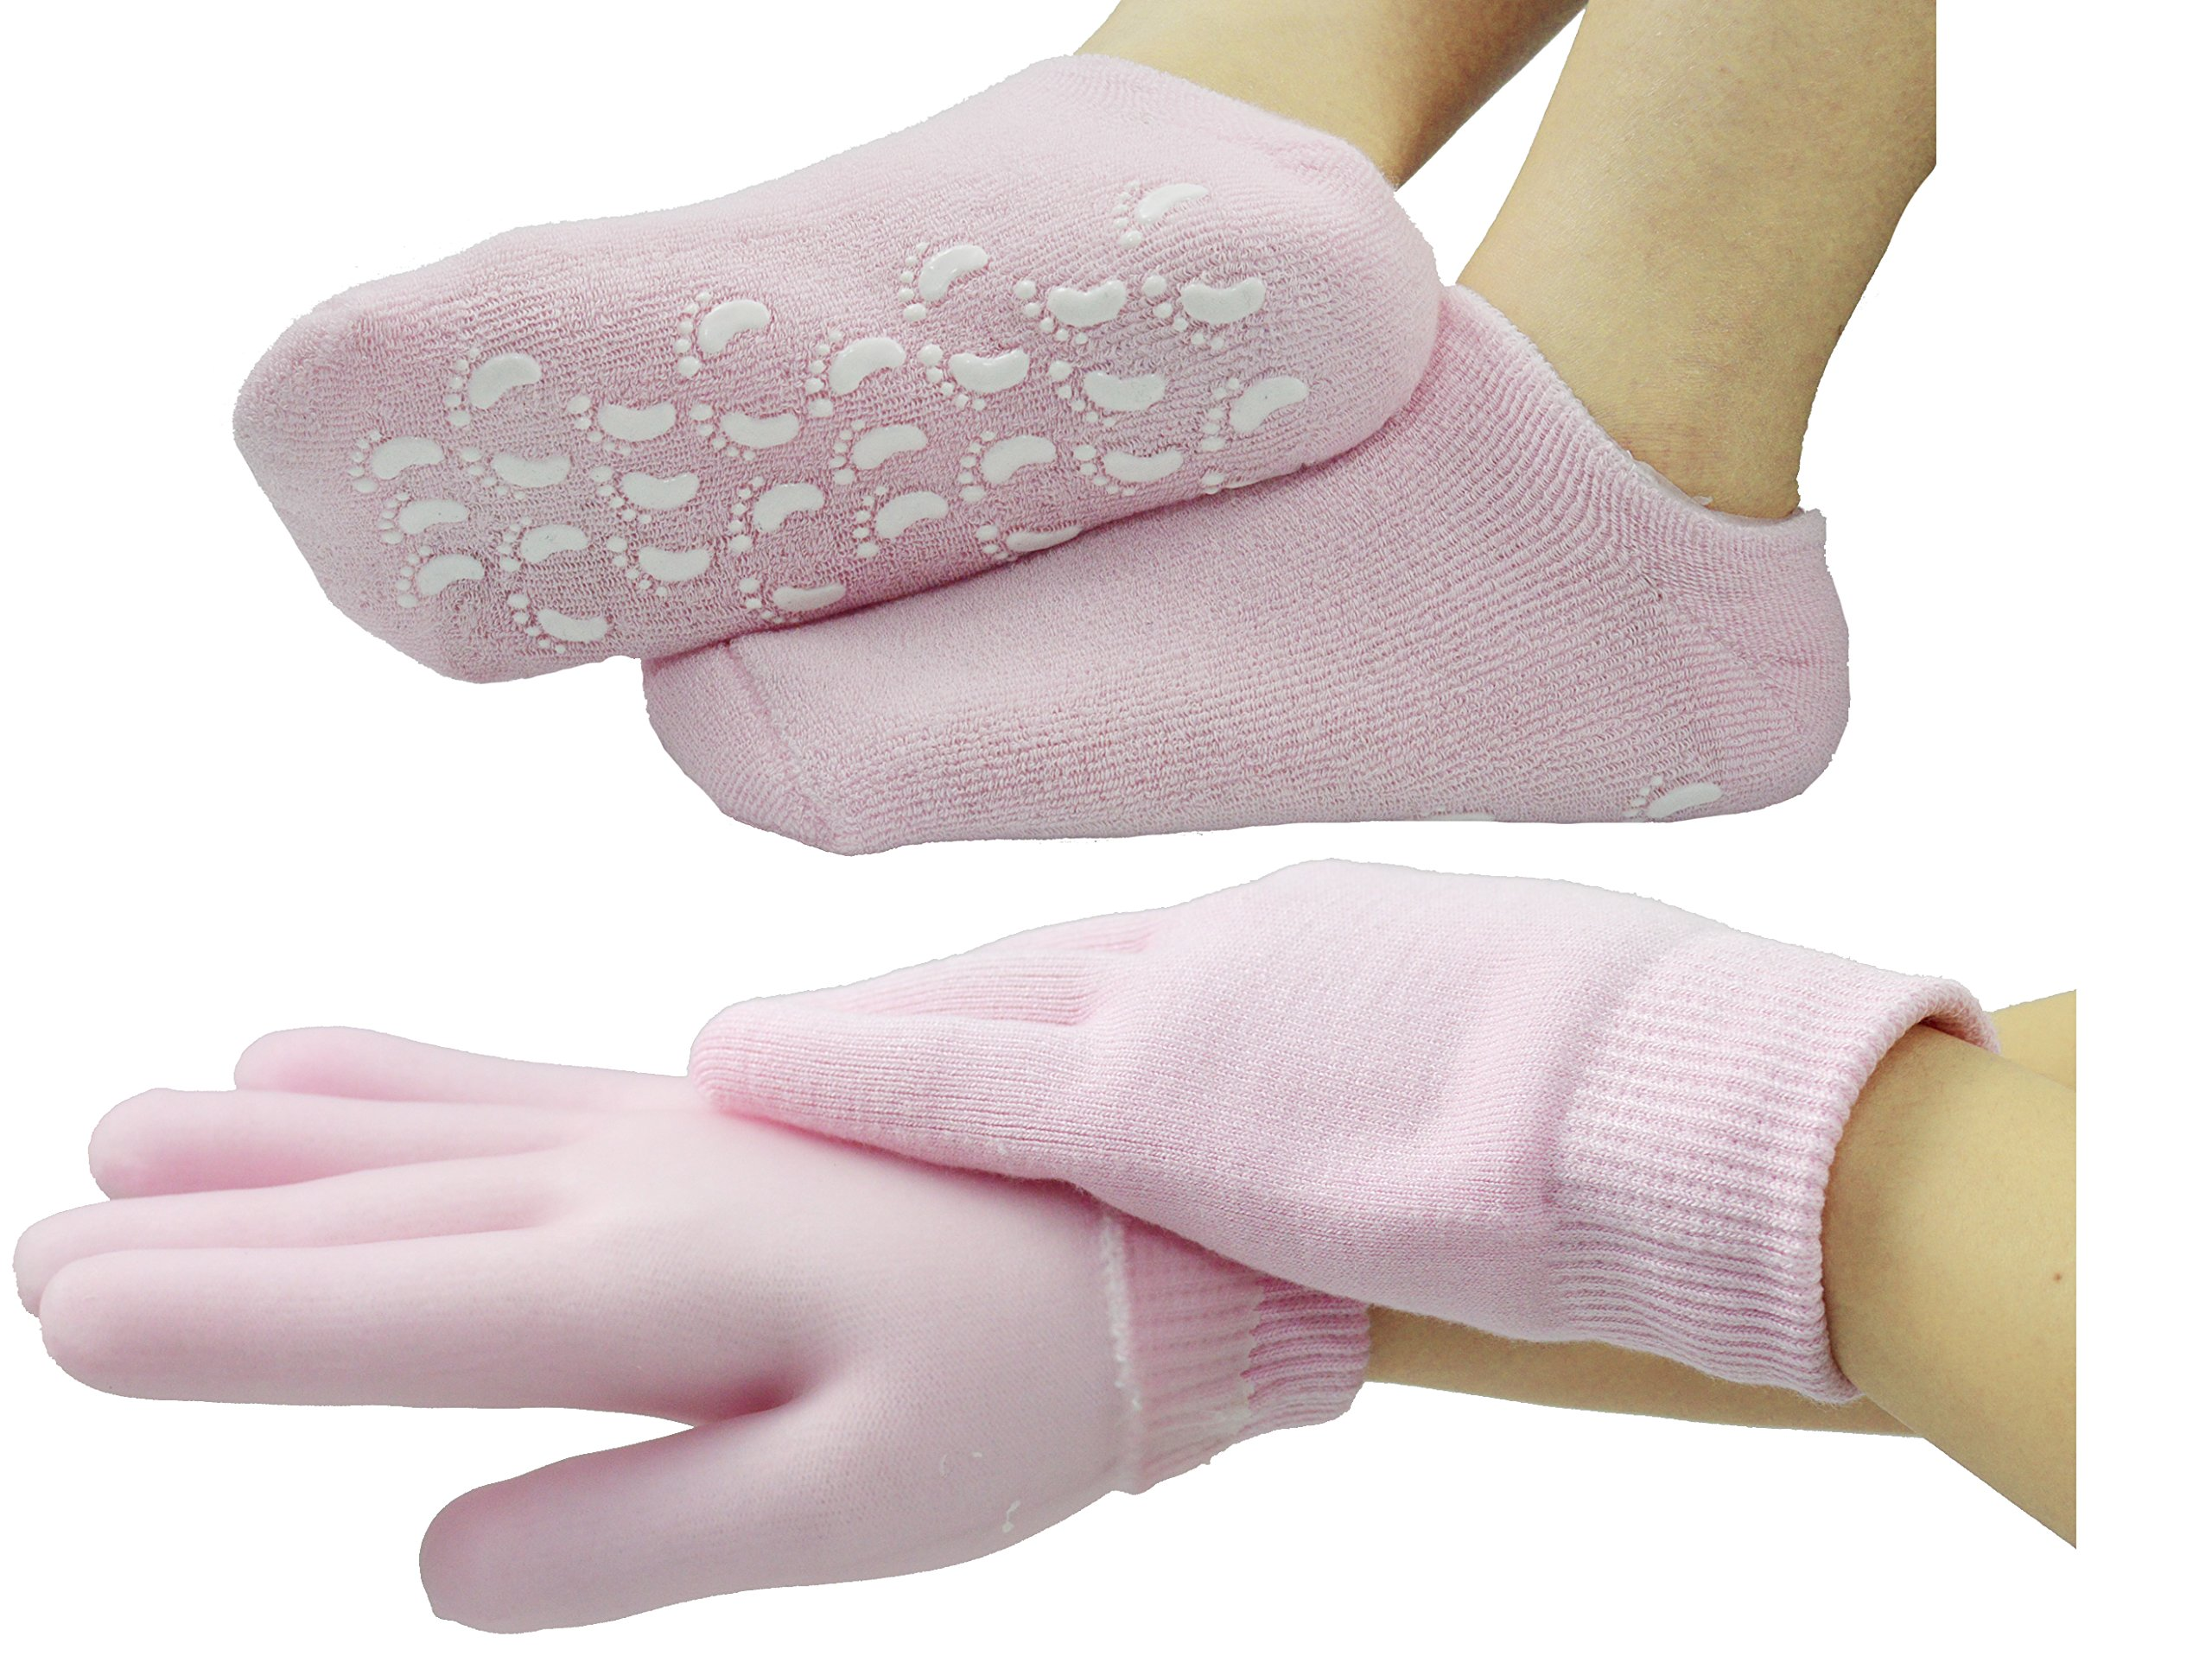 Gel Moisturizing Gloves and Spa Socks Cotton for Dry Cracked Heels Feet Skin Repair Treatment for Large Size Women in Dry Hands and Foot Use Overnight by Phenitech( 1pair socks & 1pair g(Pink)